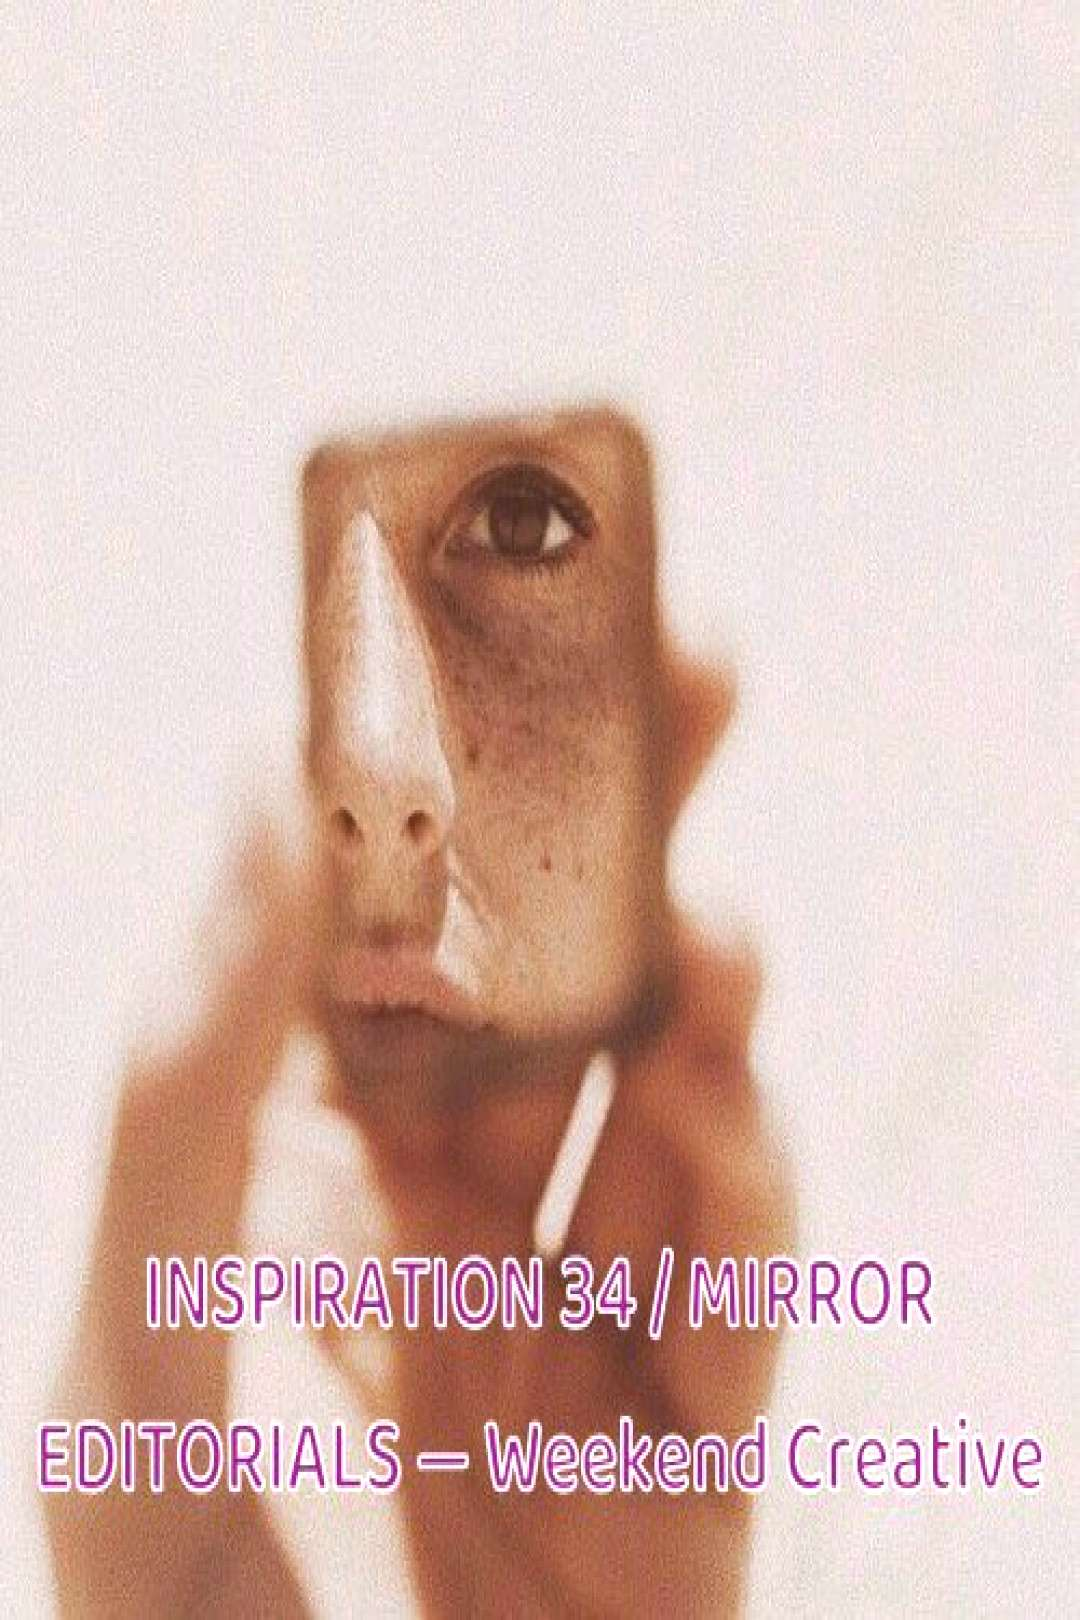 INSPIRATION 34 / MIRROR EDITORIALS — Weekend Creative Recently Ive been looking at a lot of maga